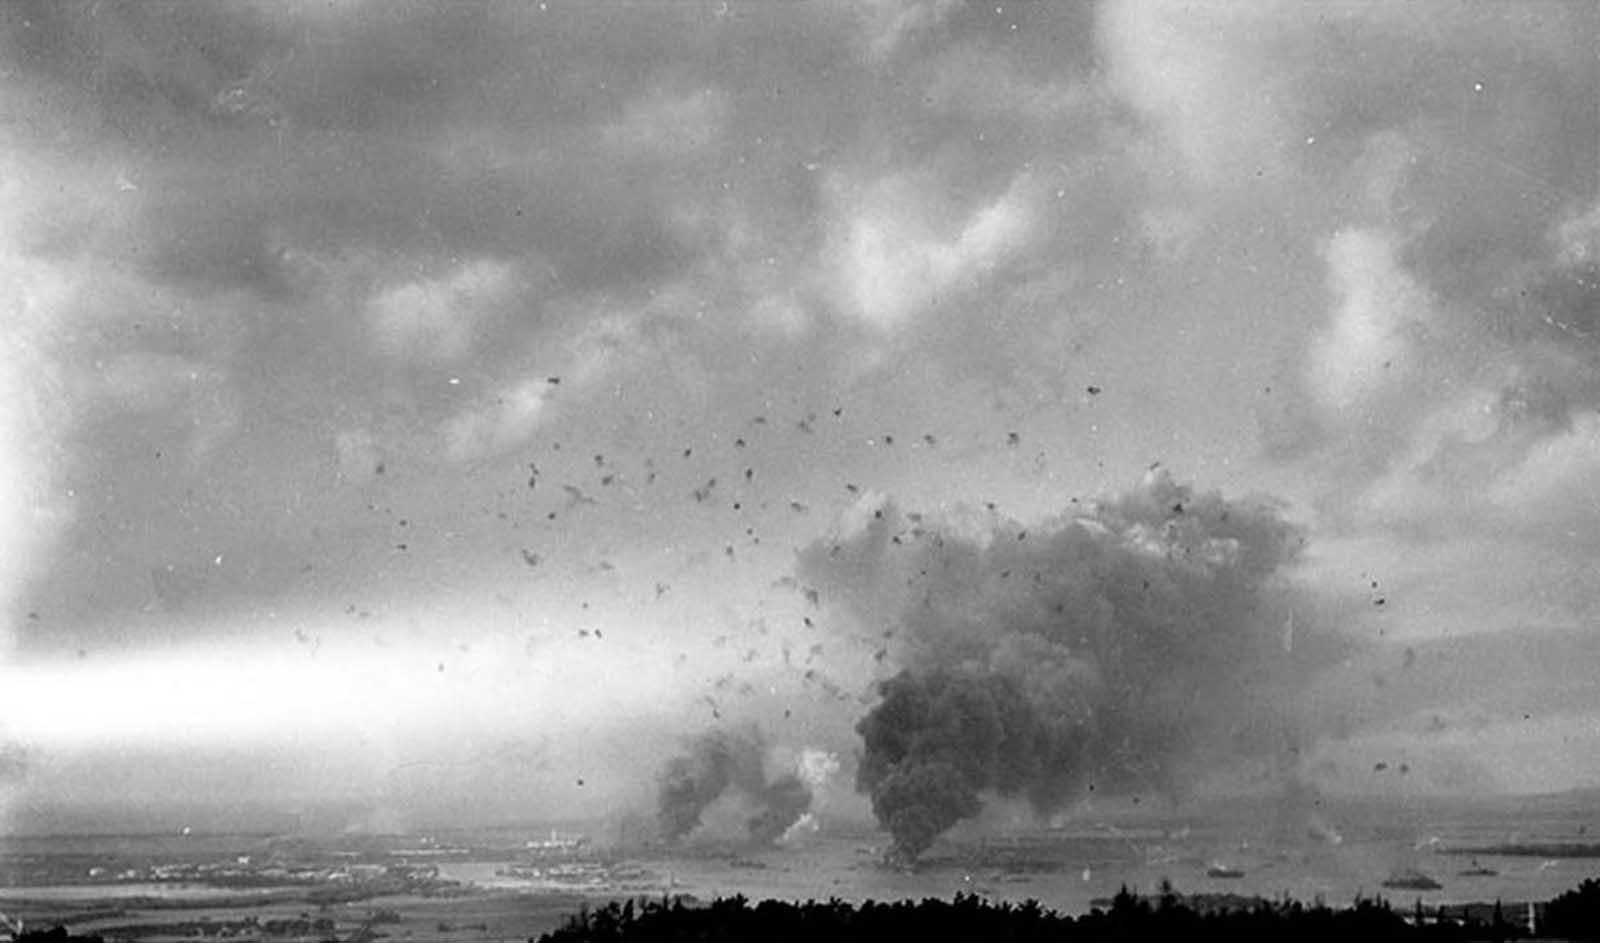 A wide-angle view of the sky above Pearl Harbor, Hawaii, filled with smoke and anti-aircraft fire on December 7, 1941.